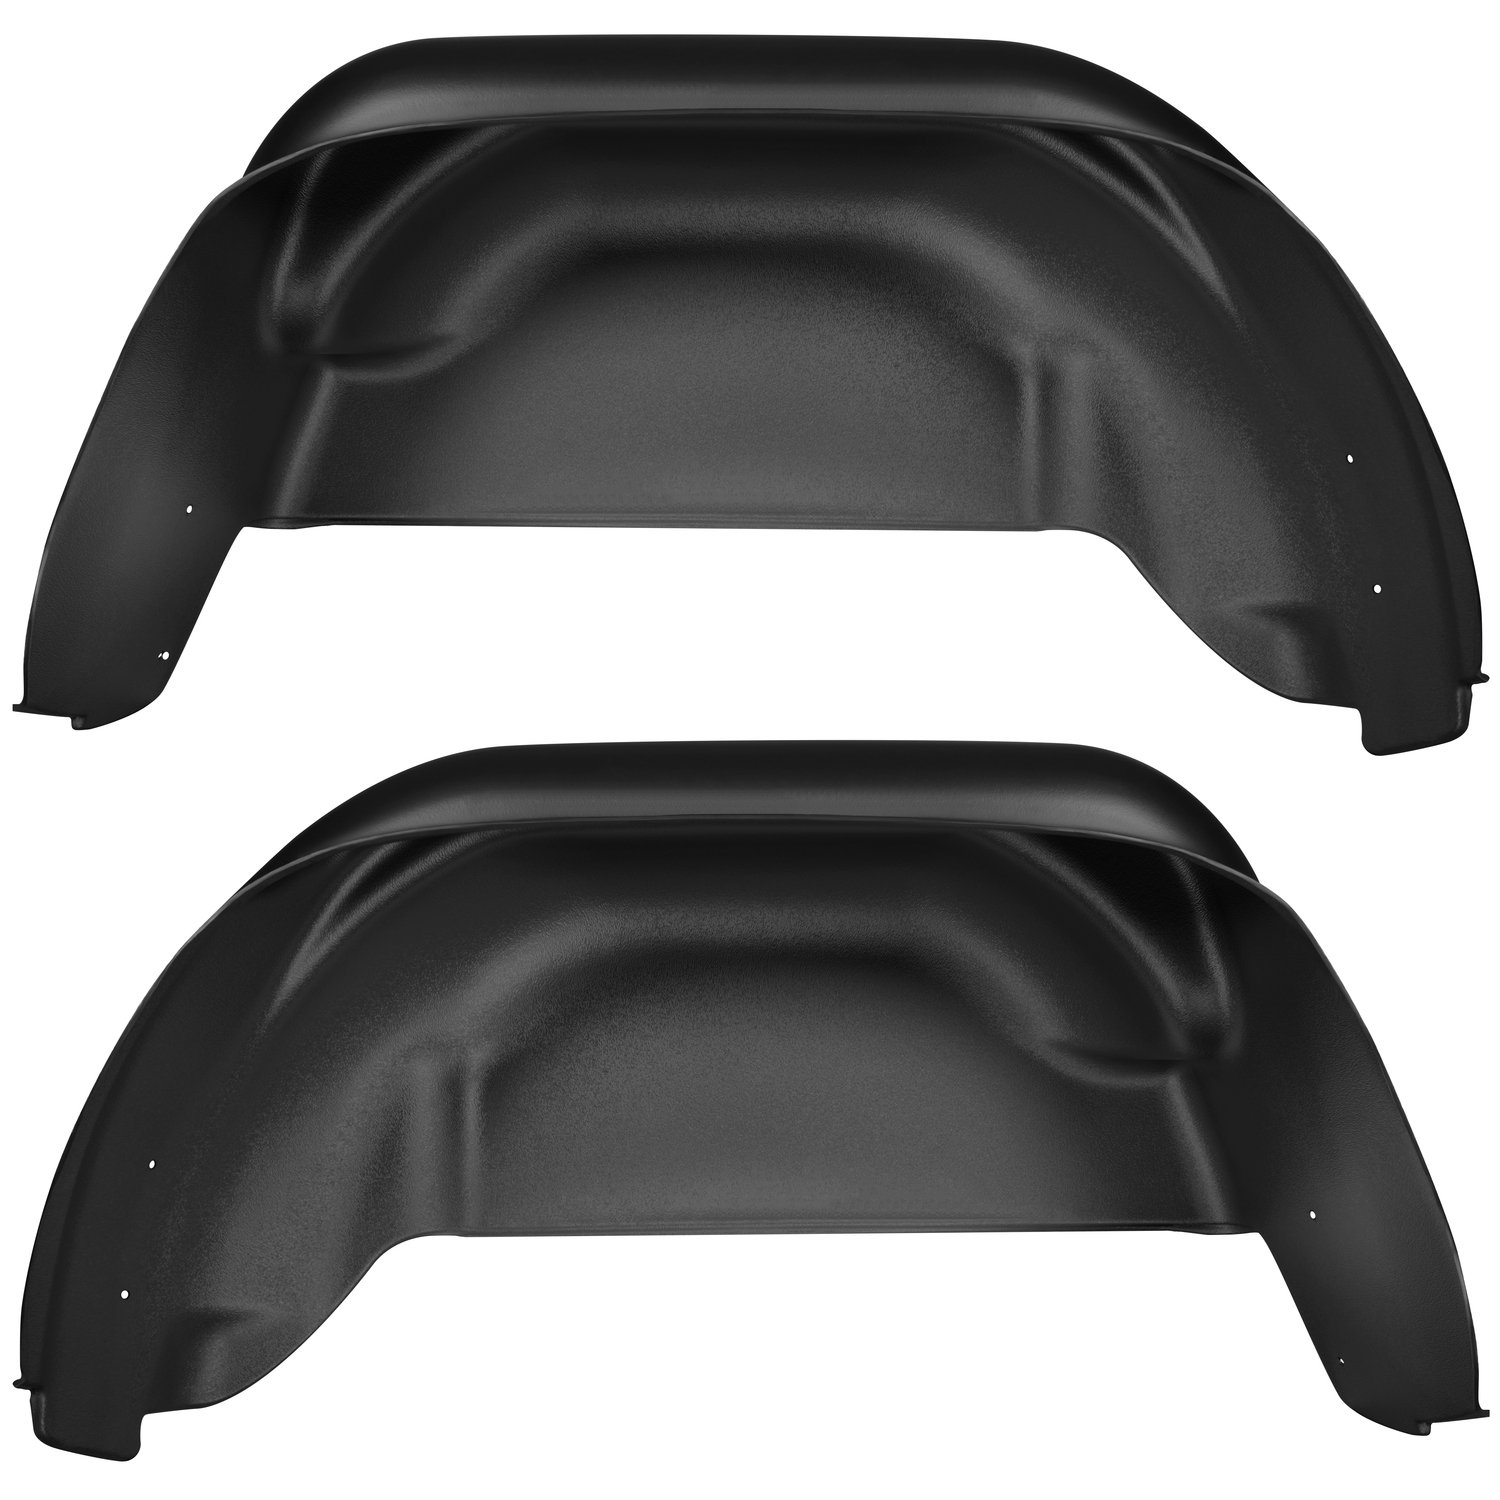 Husky Liners 79021 Black Rear Wheel Well Guards Fits 15-19 Colorado/Canyon